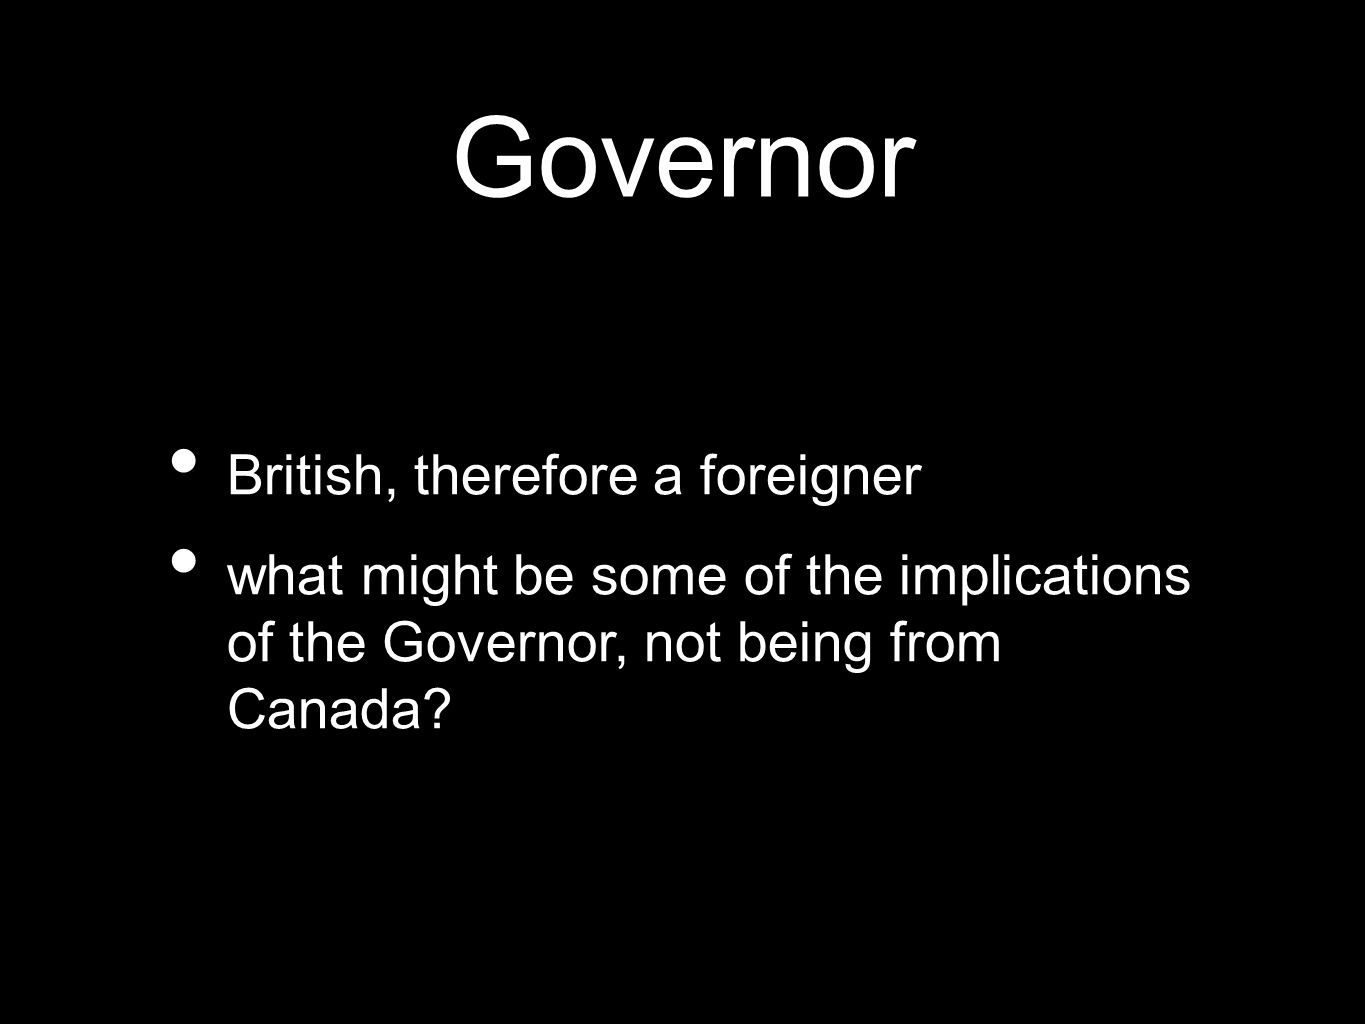 Governor British, therefore a foreigner what might be some of the implications of the Governor, not being from Canada